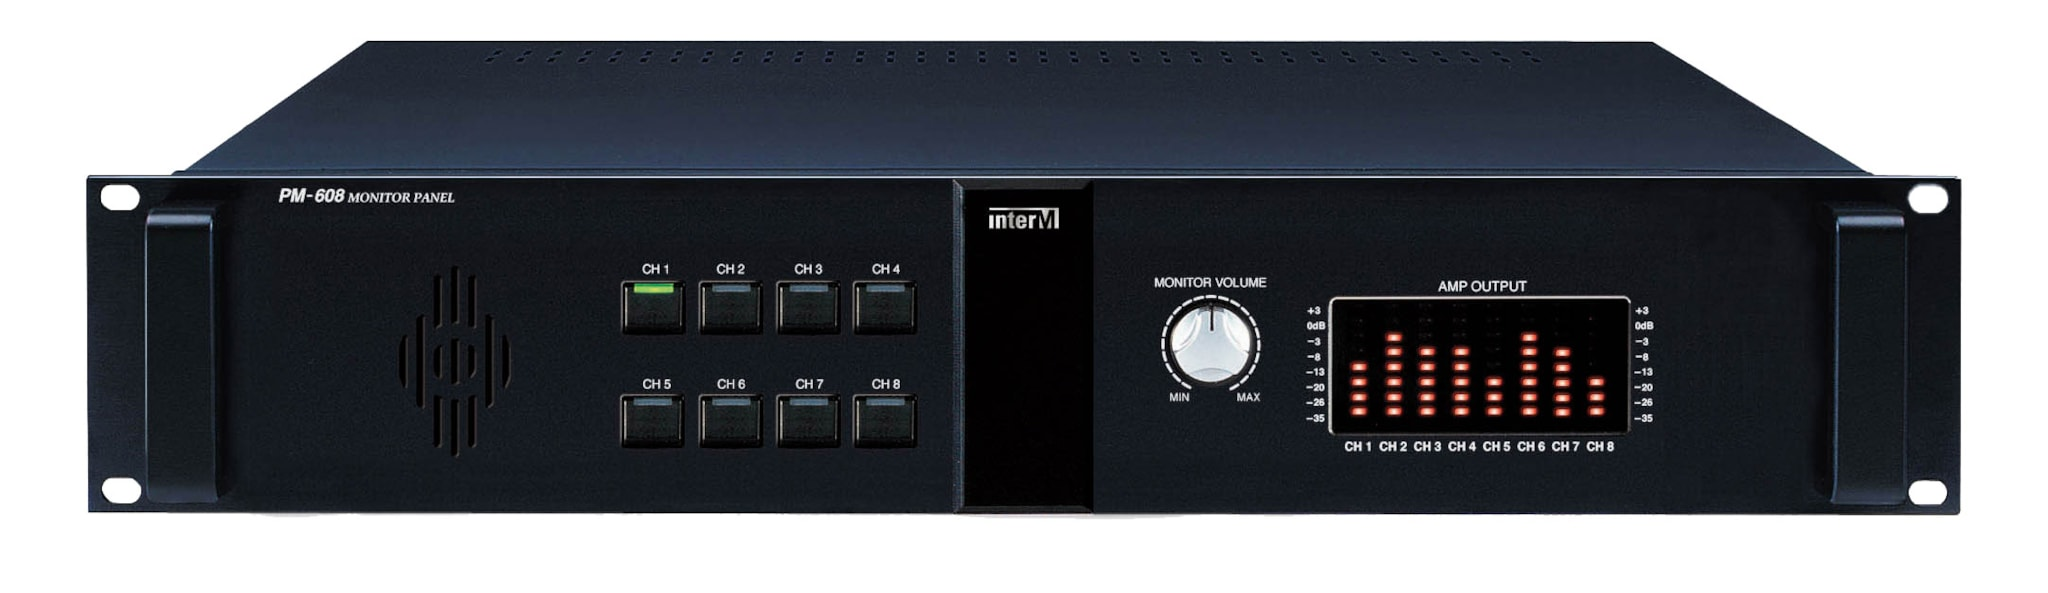 PM608 - 8 channel monitor panel